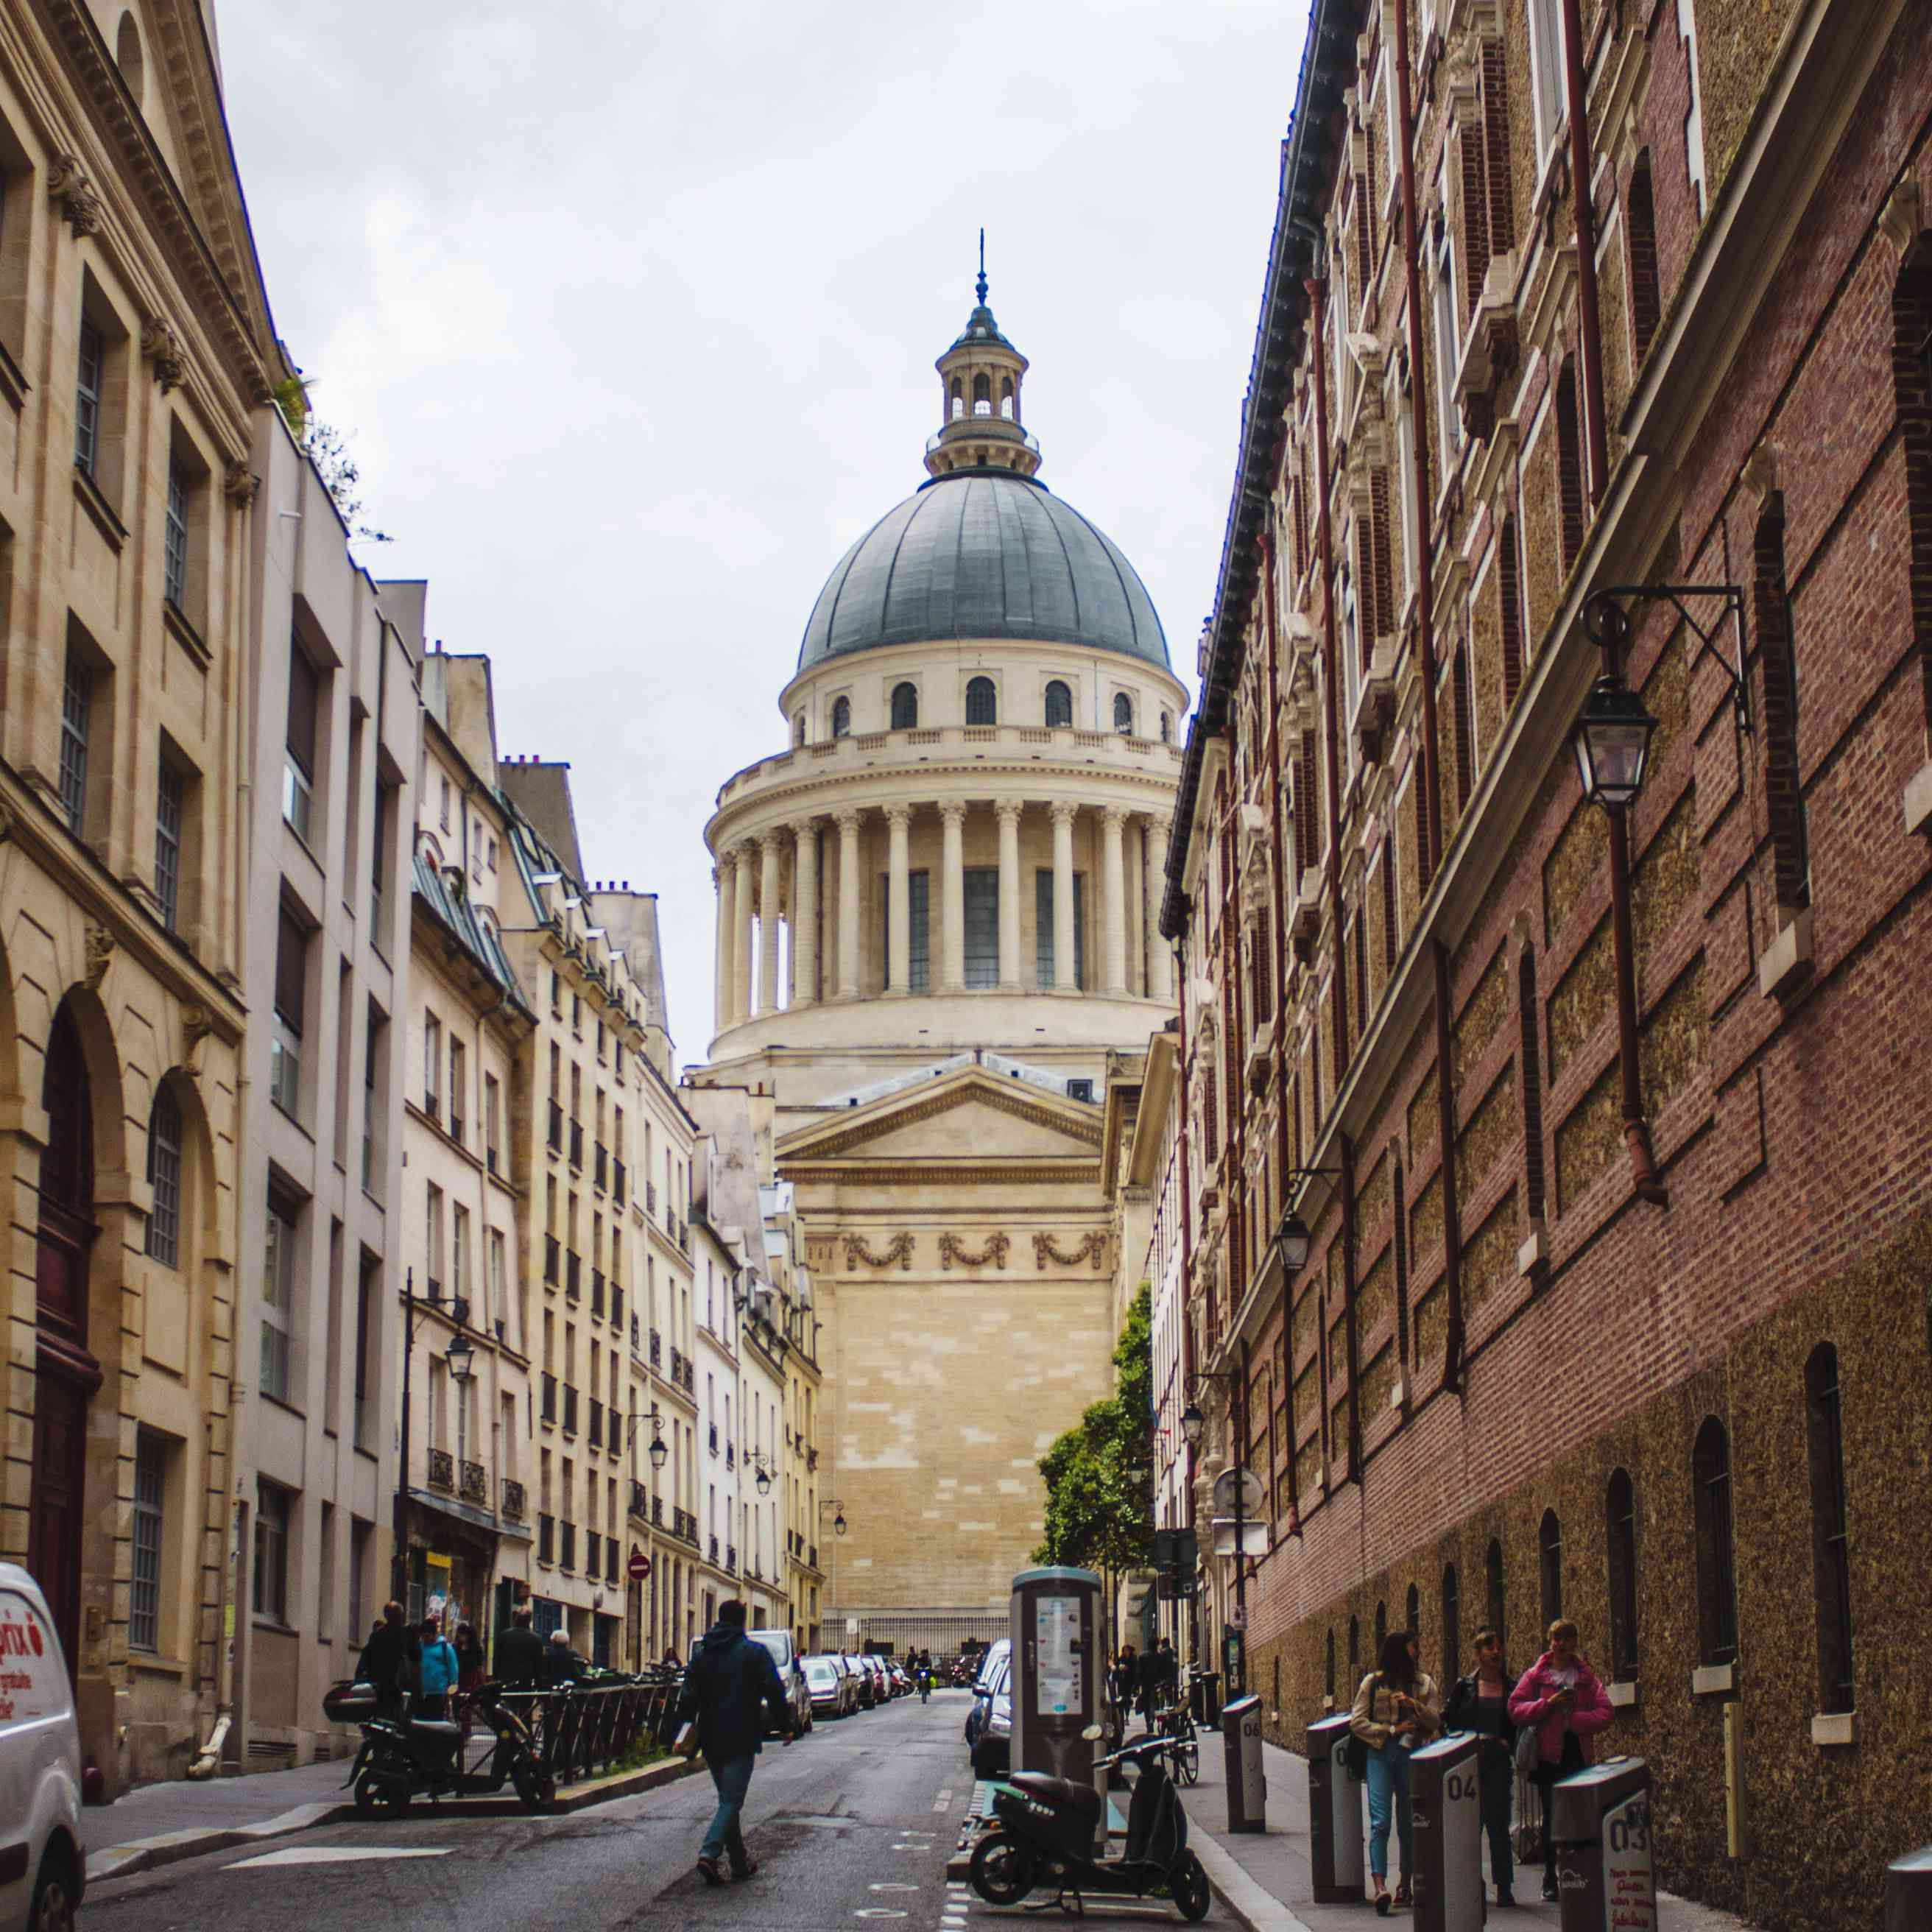 Street leading to the Pantheon